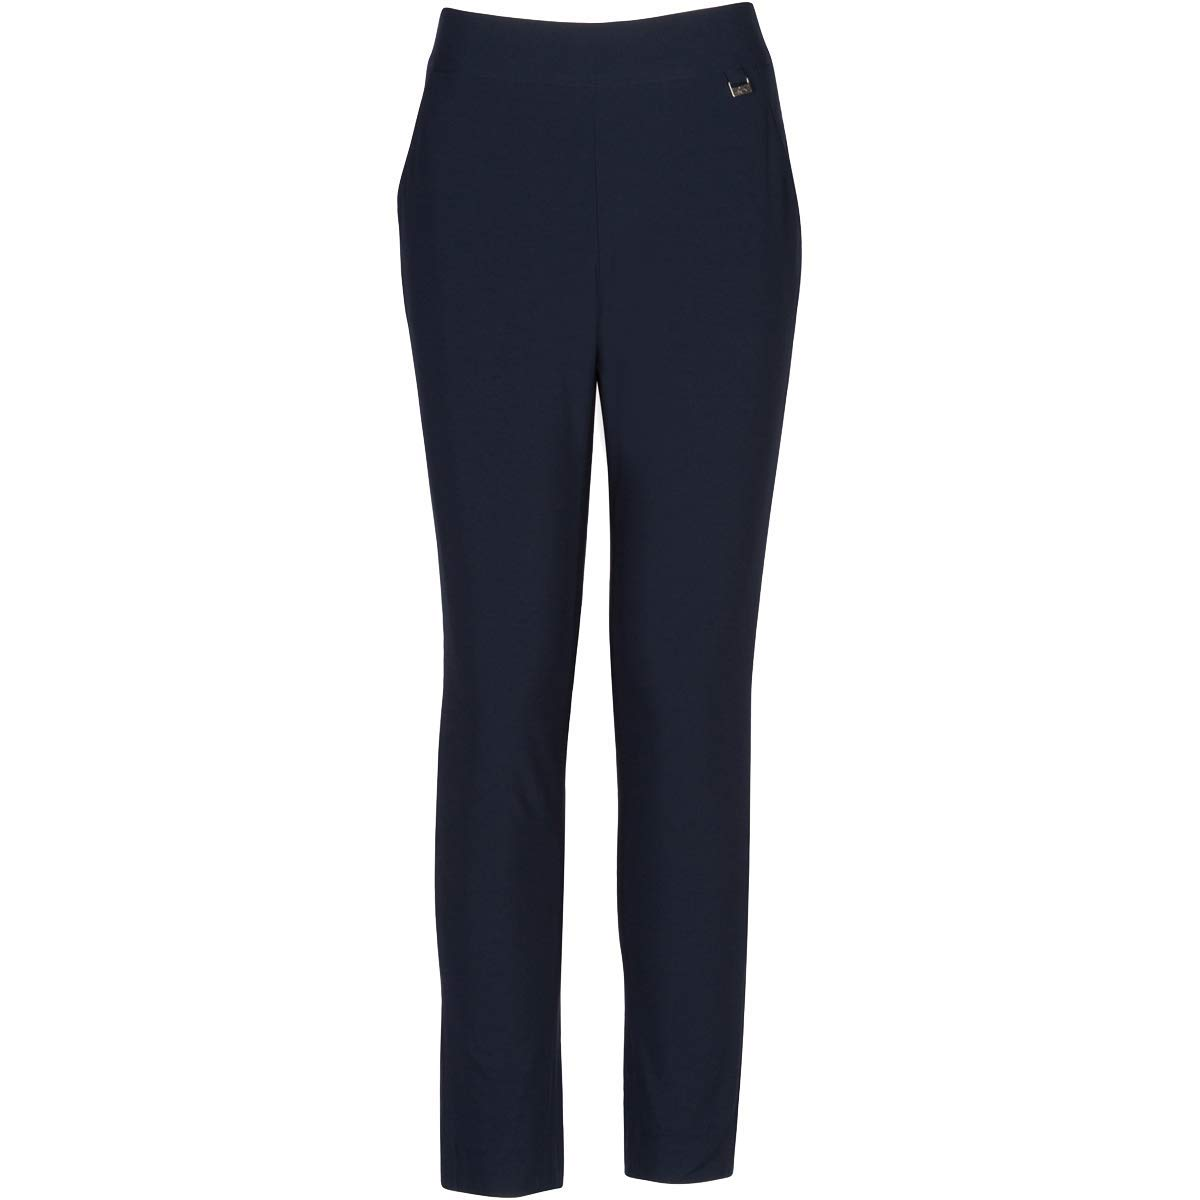 Greg Norman Women's Ml75 Pull-on Pant, Dark Navy, 6 by Greg Norman